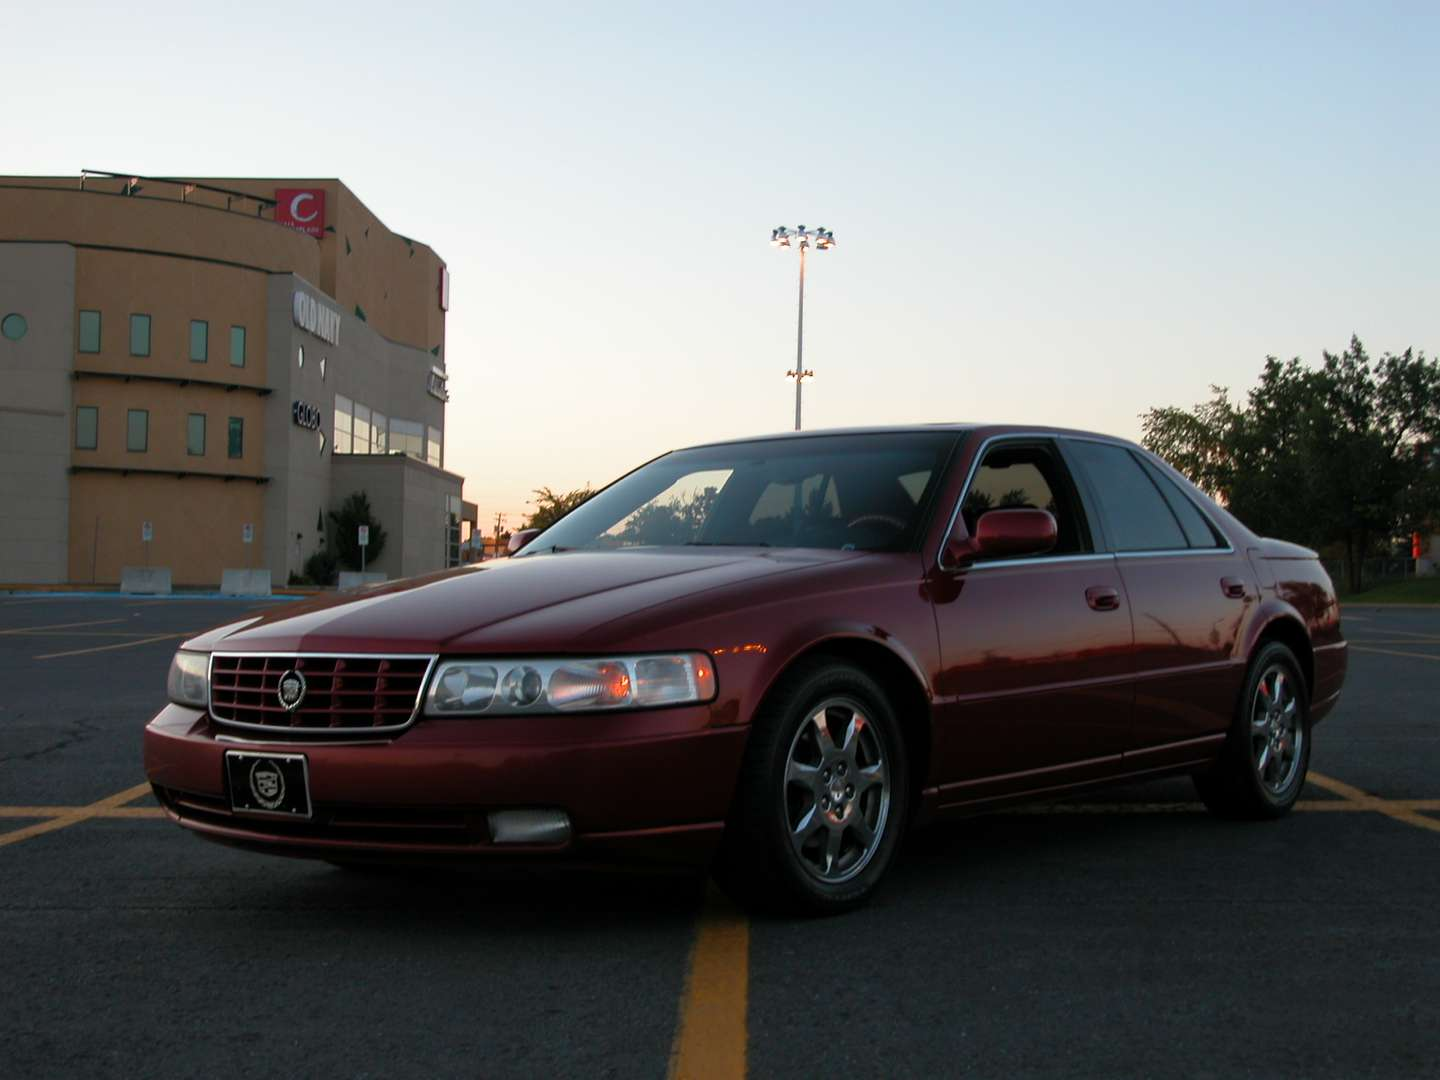 Cadillac Seville STS #7121671